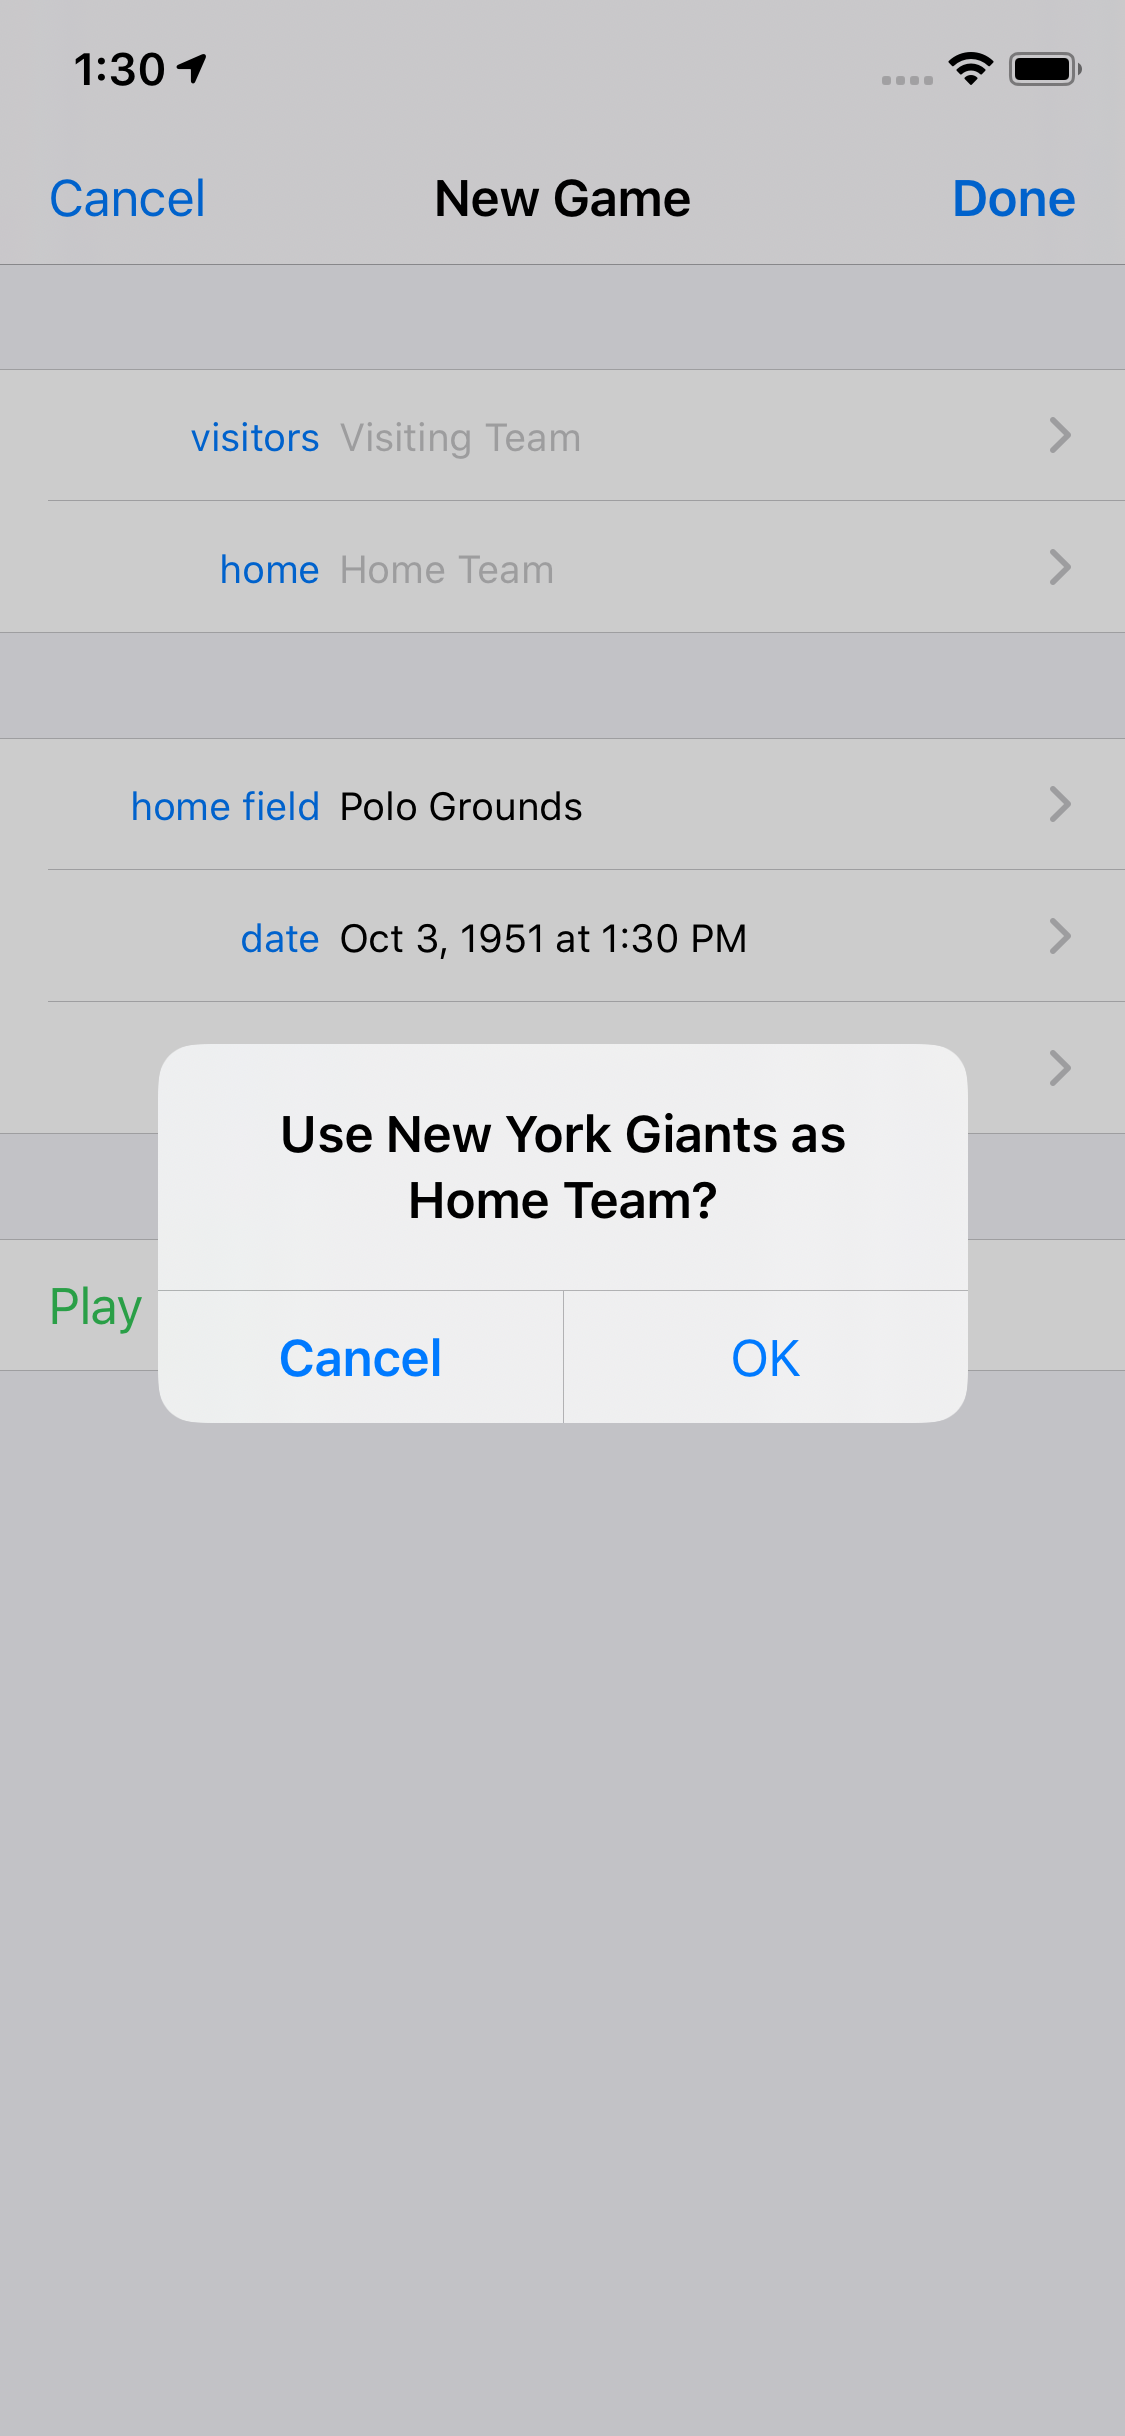 Use New York Giants as Home Team?